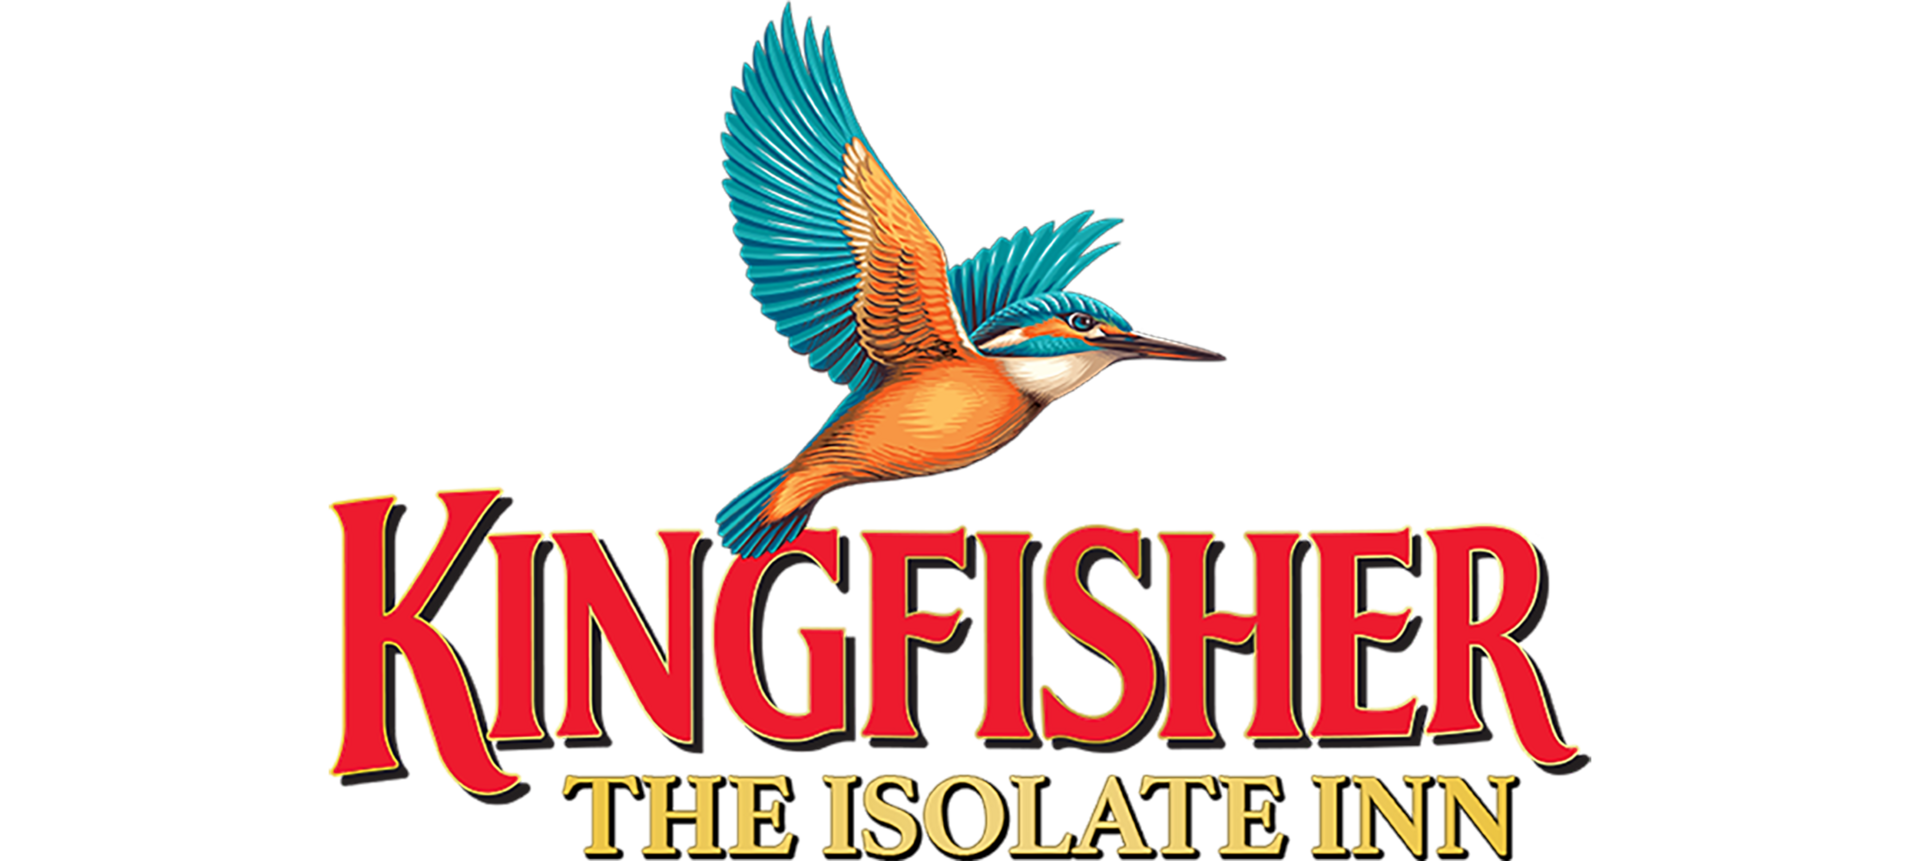 Kingfisher The Isolate Inn